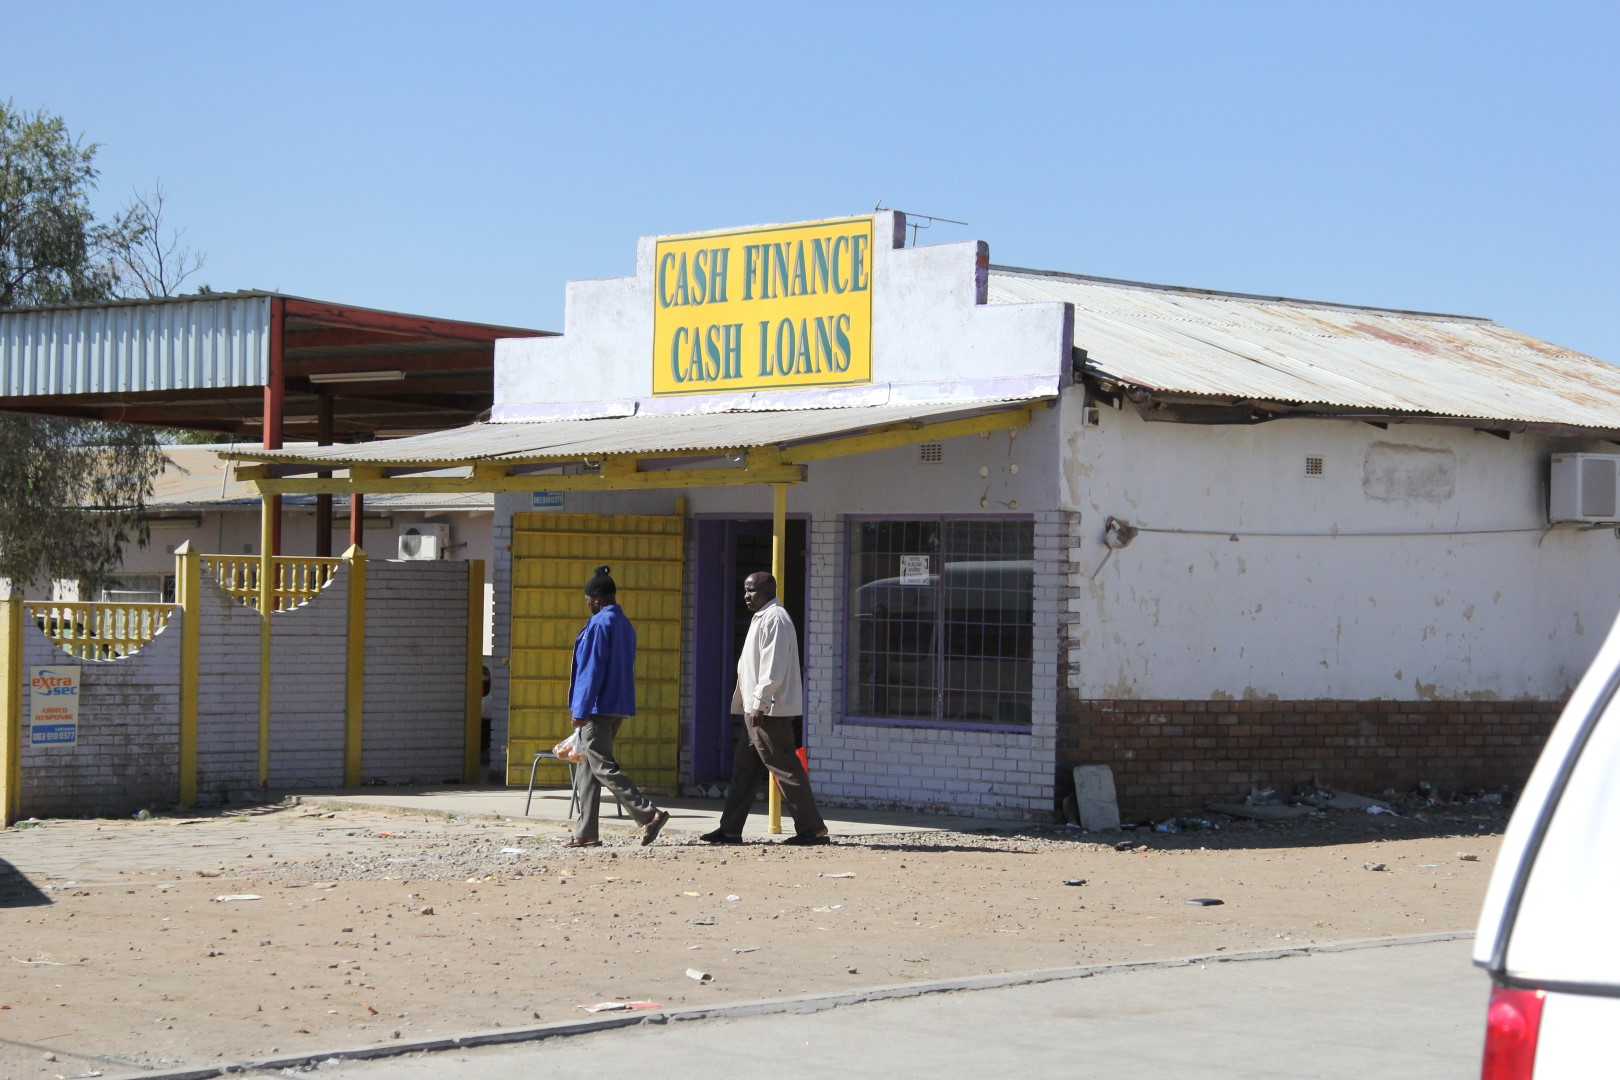 South Africa gold producers push for employees to own houses